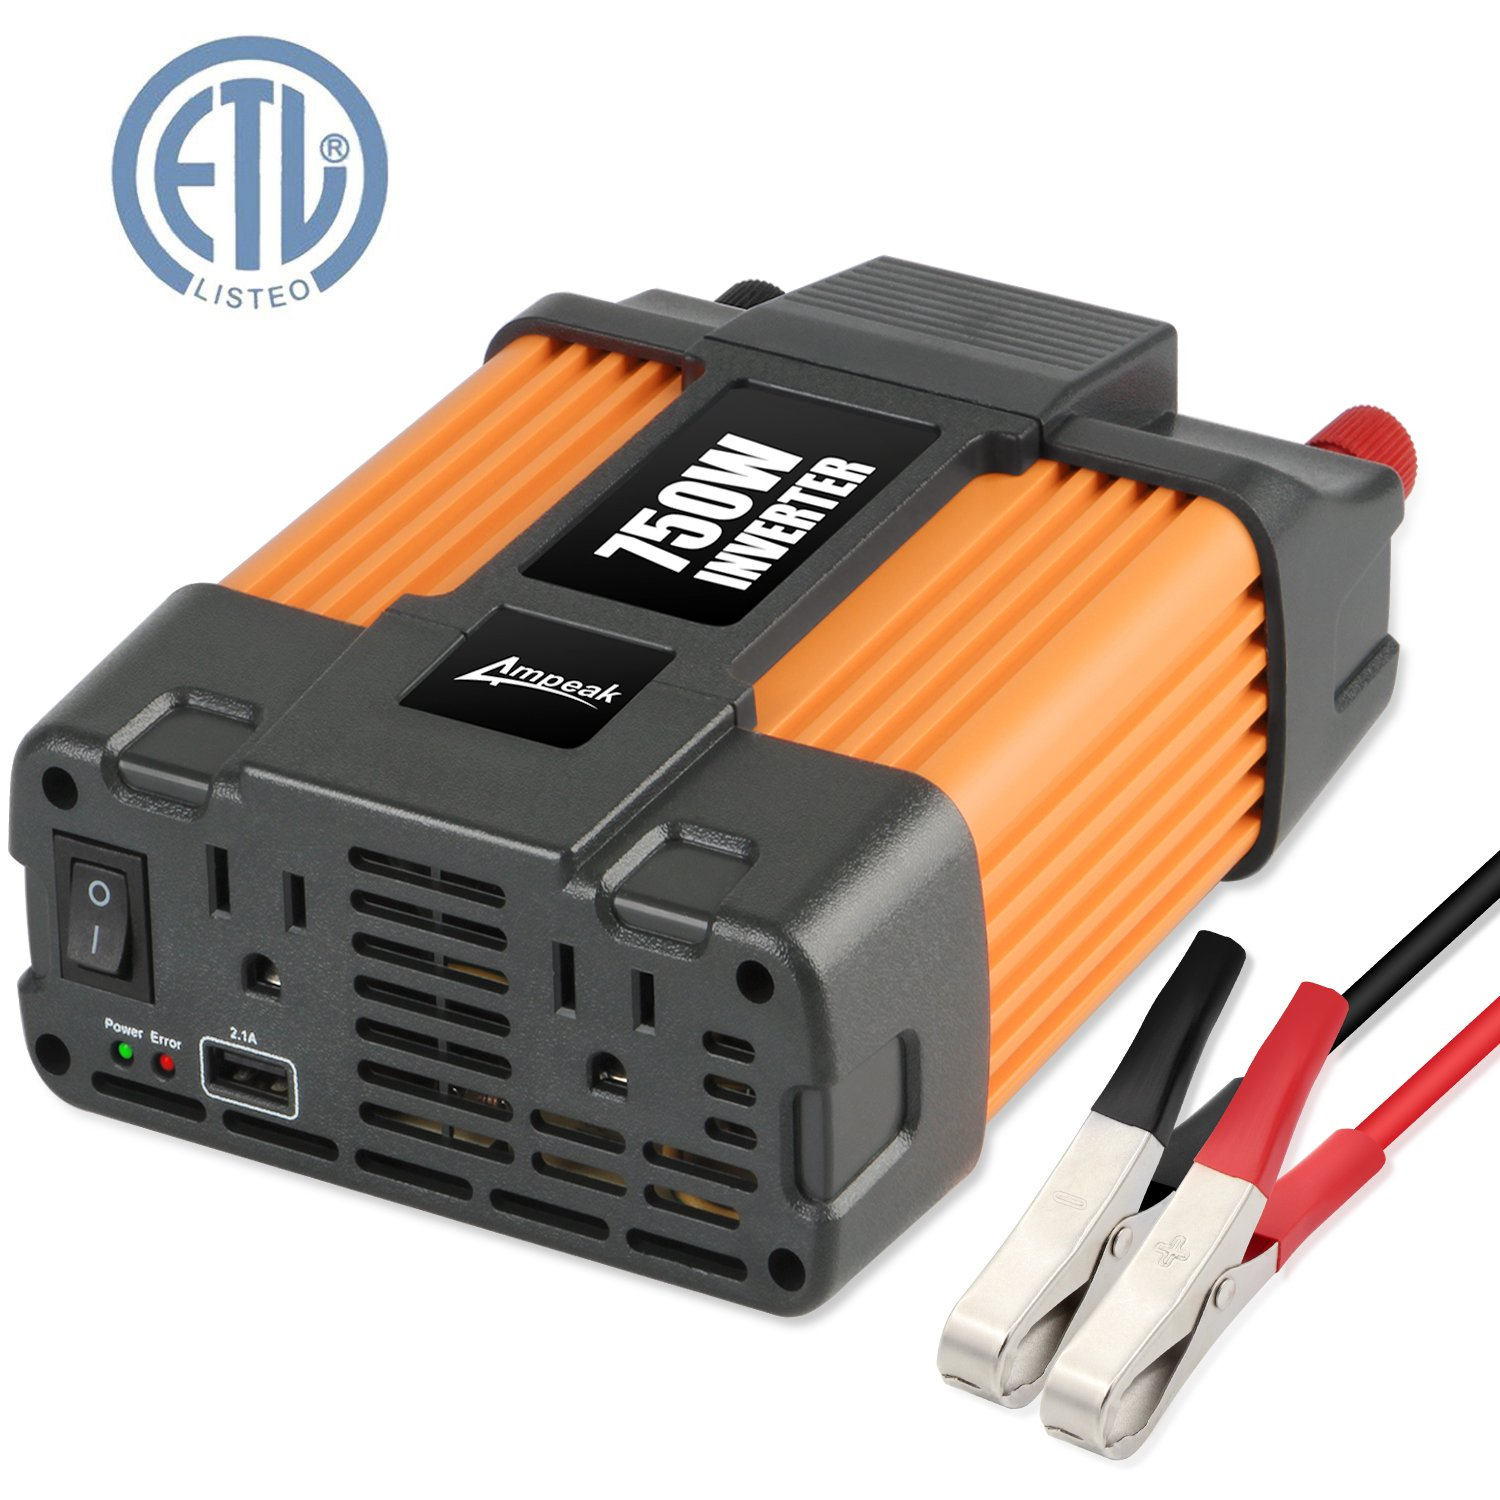 Ampeak 750W Power Inverter DC 12V to 110V AC Converter with 2.1A USB Dual AC Outlets Car Inverter by Ampeak